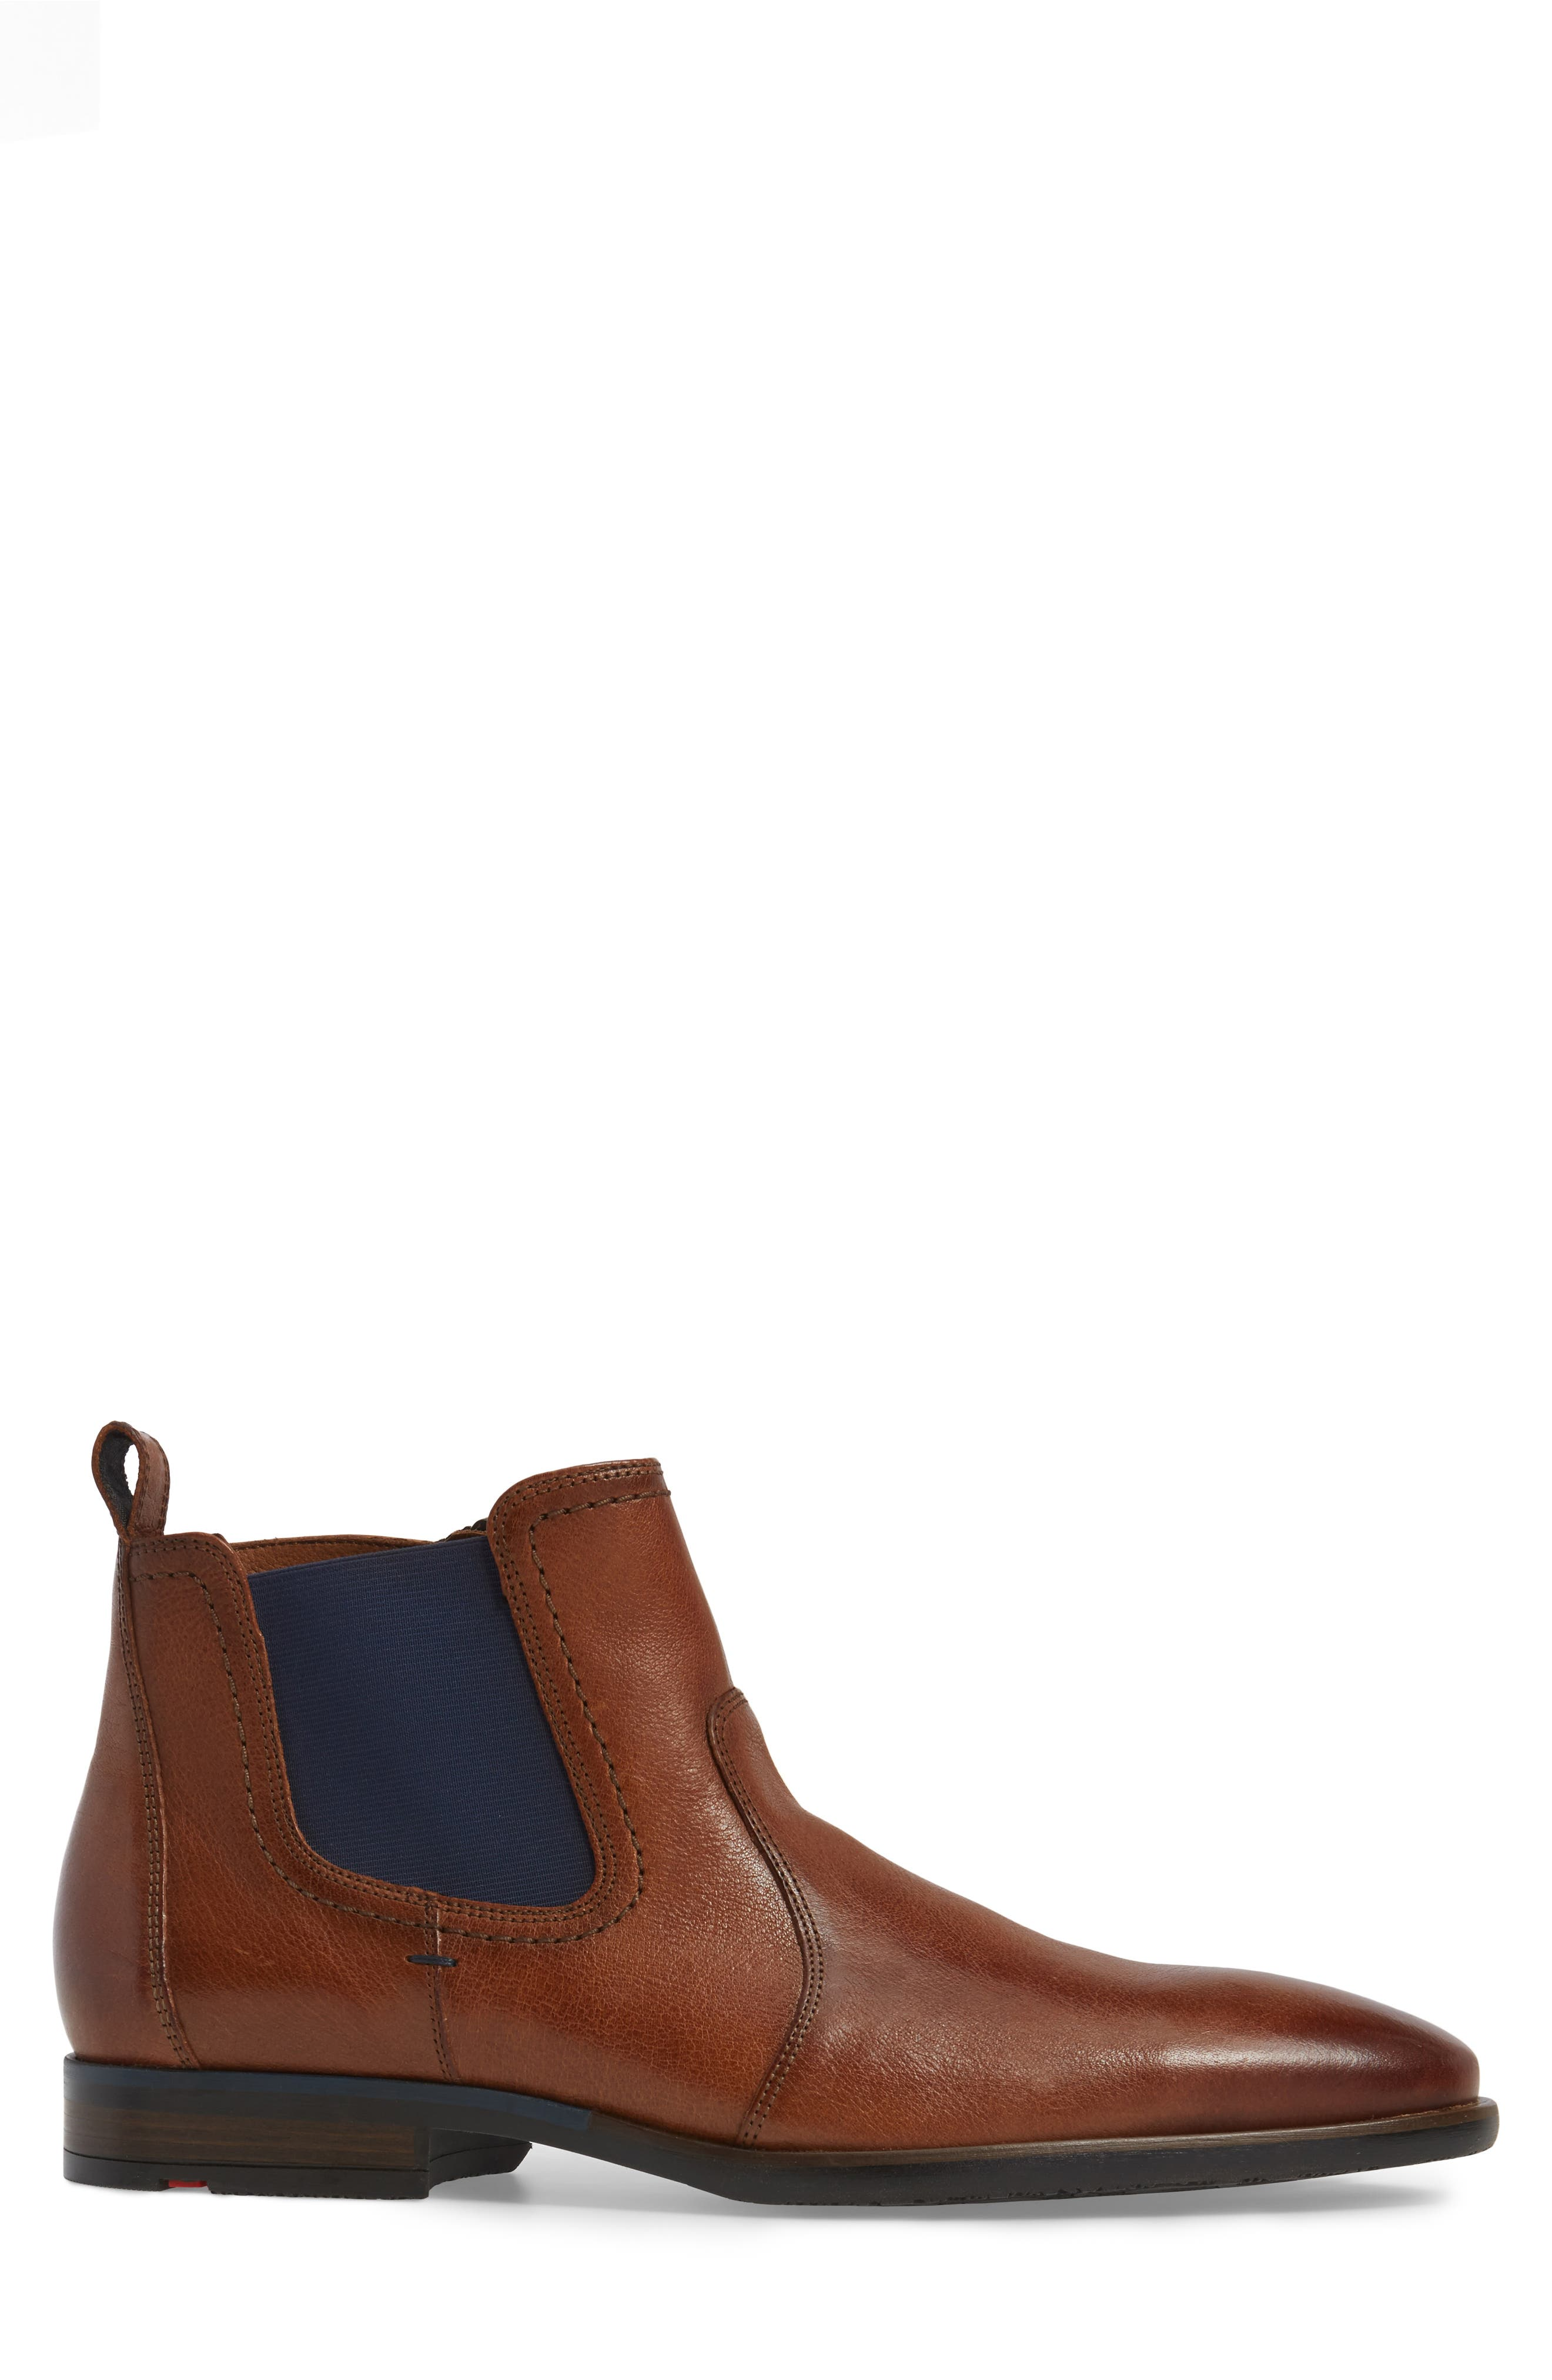 Dylan Chelsea Boot,                             Alternate thumbnail 3, color,                             Brown Leather